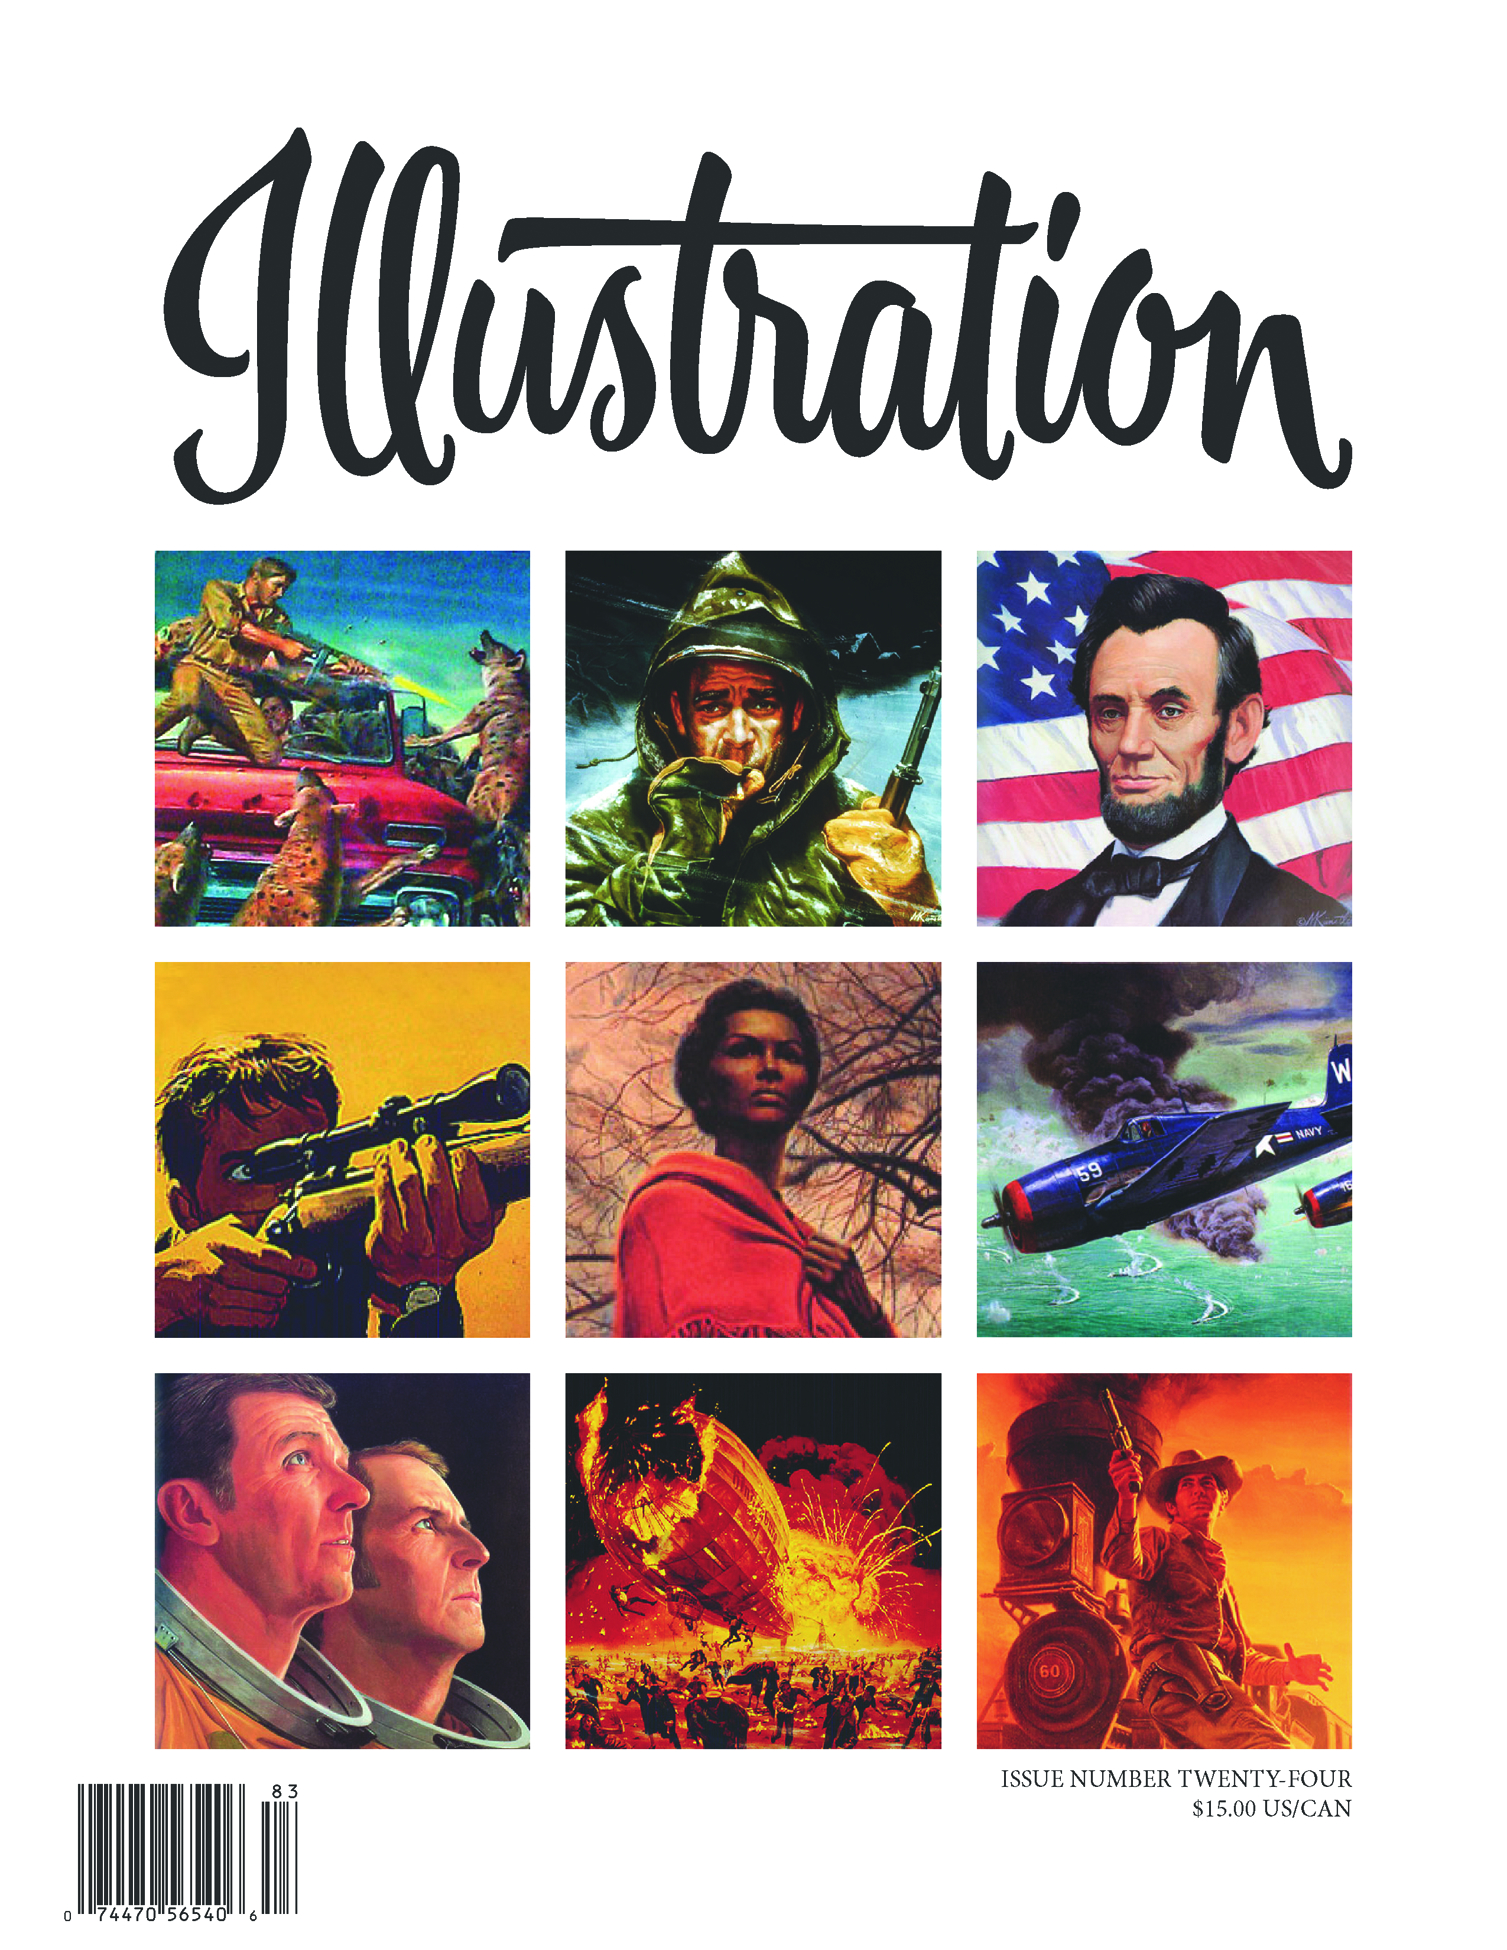 ILLUSTRATION MAGAZINE #24